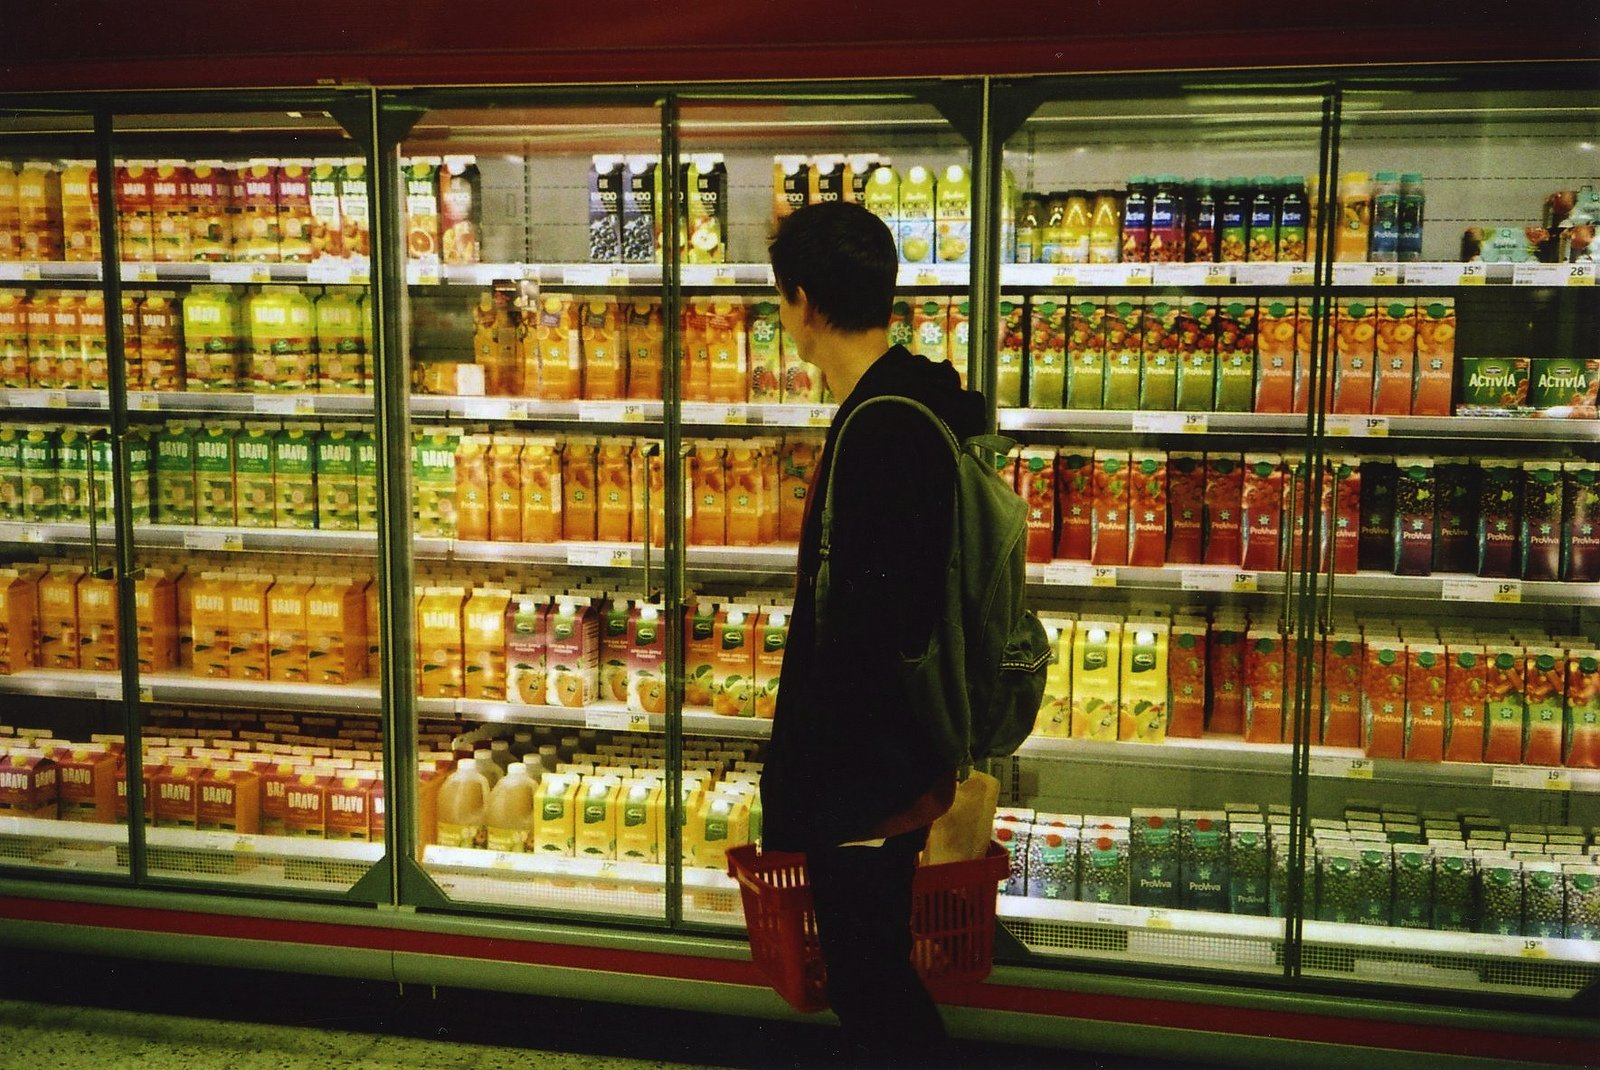 how can you know what's healthy at the grocery store?